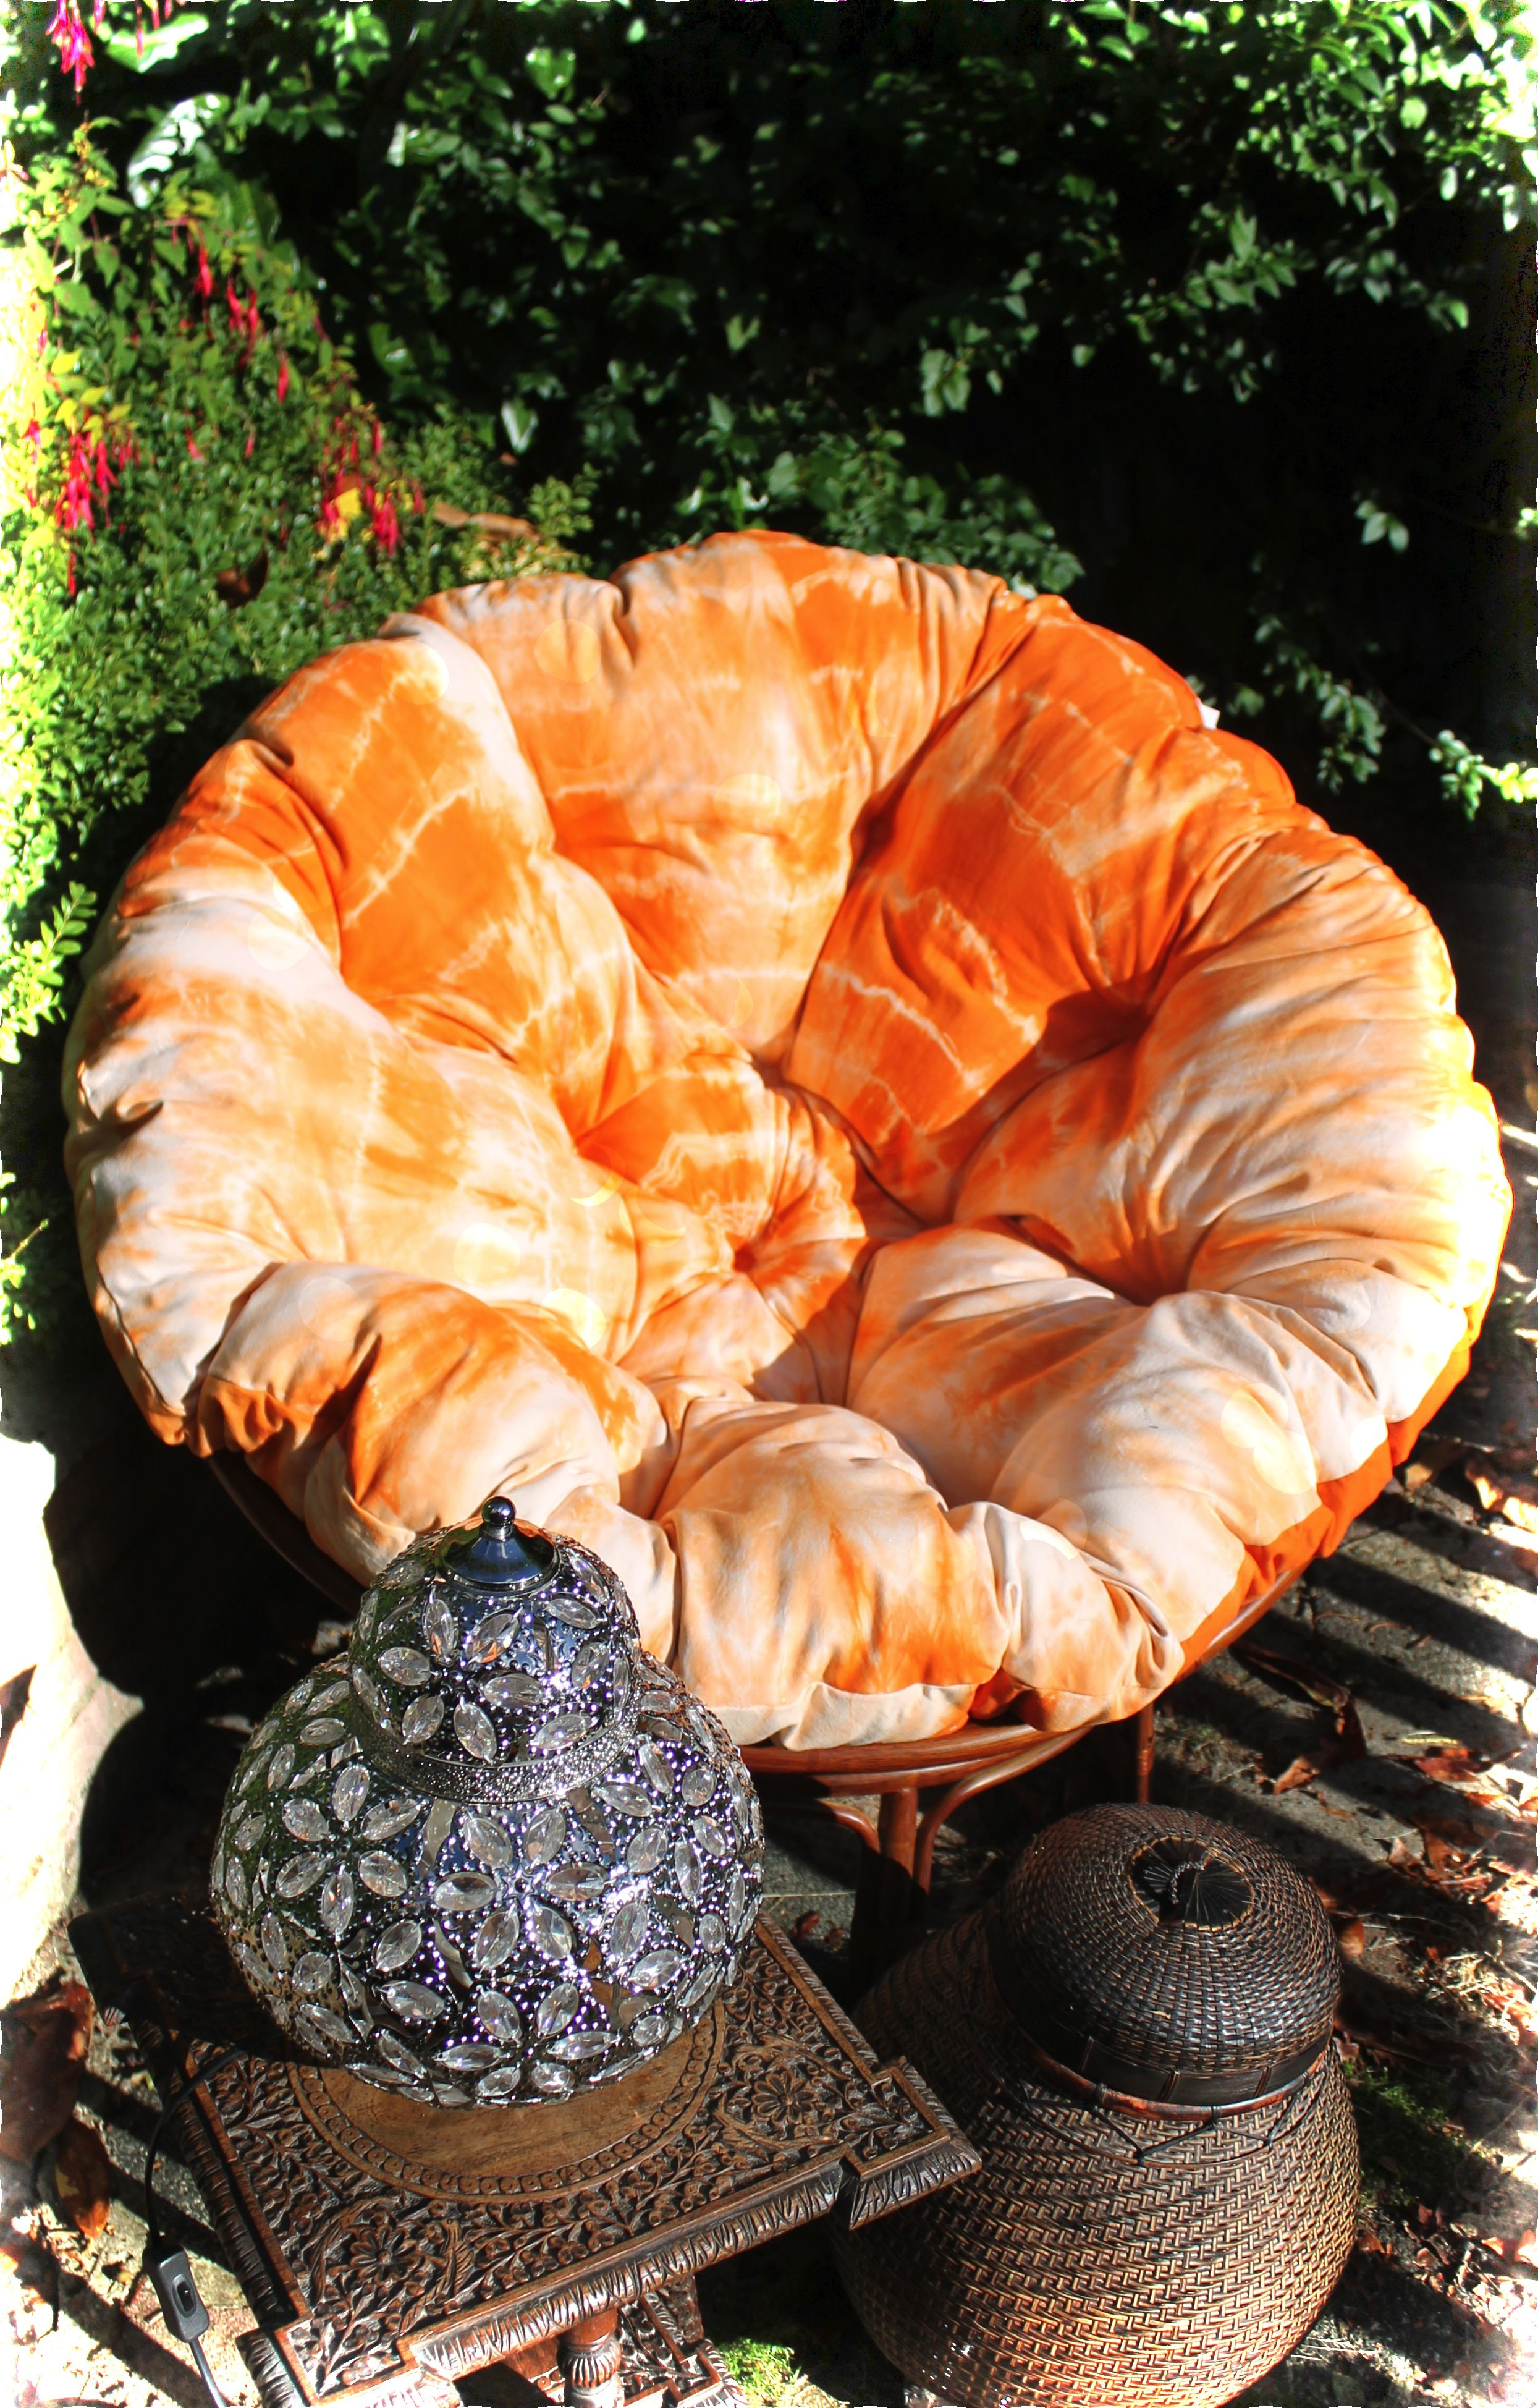 Tie Dye your own Papasan Cushion with our bespoke kits available